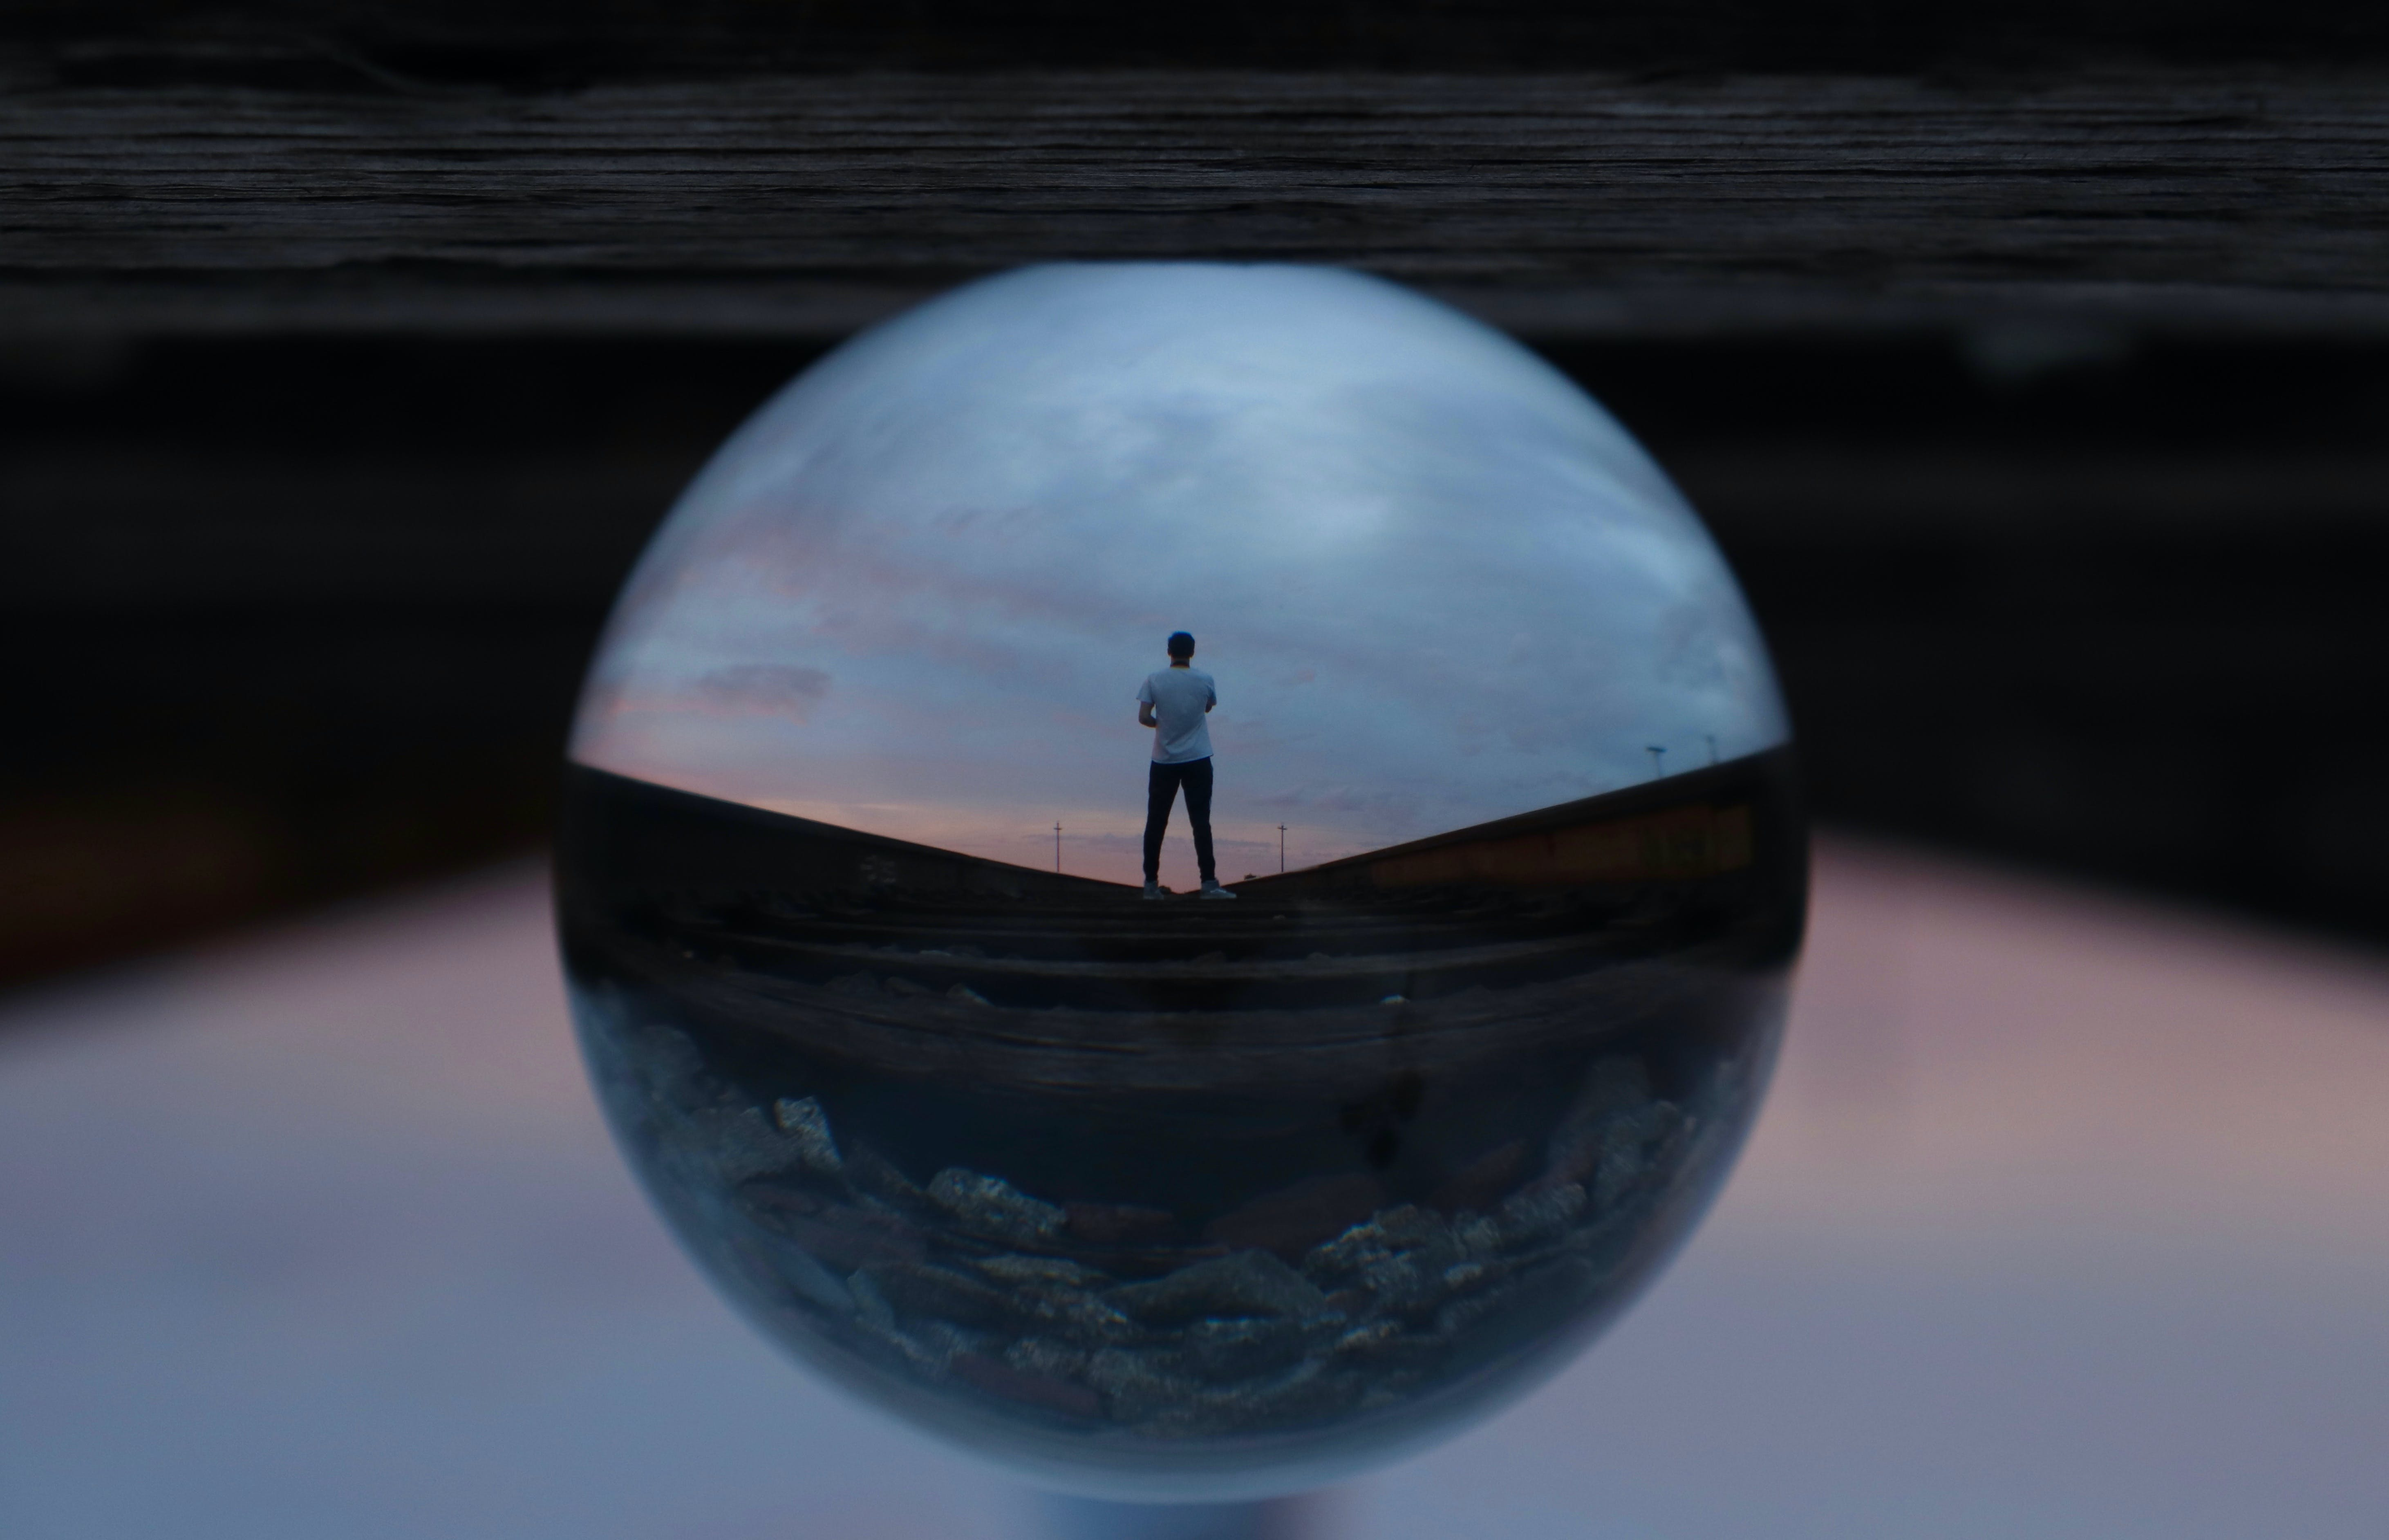 Round Glass Ball Reflecting Man Standing